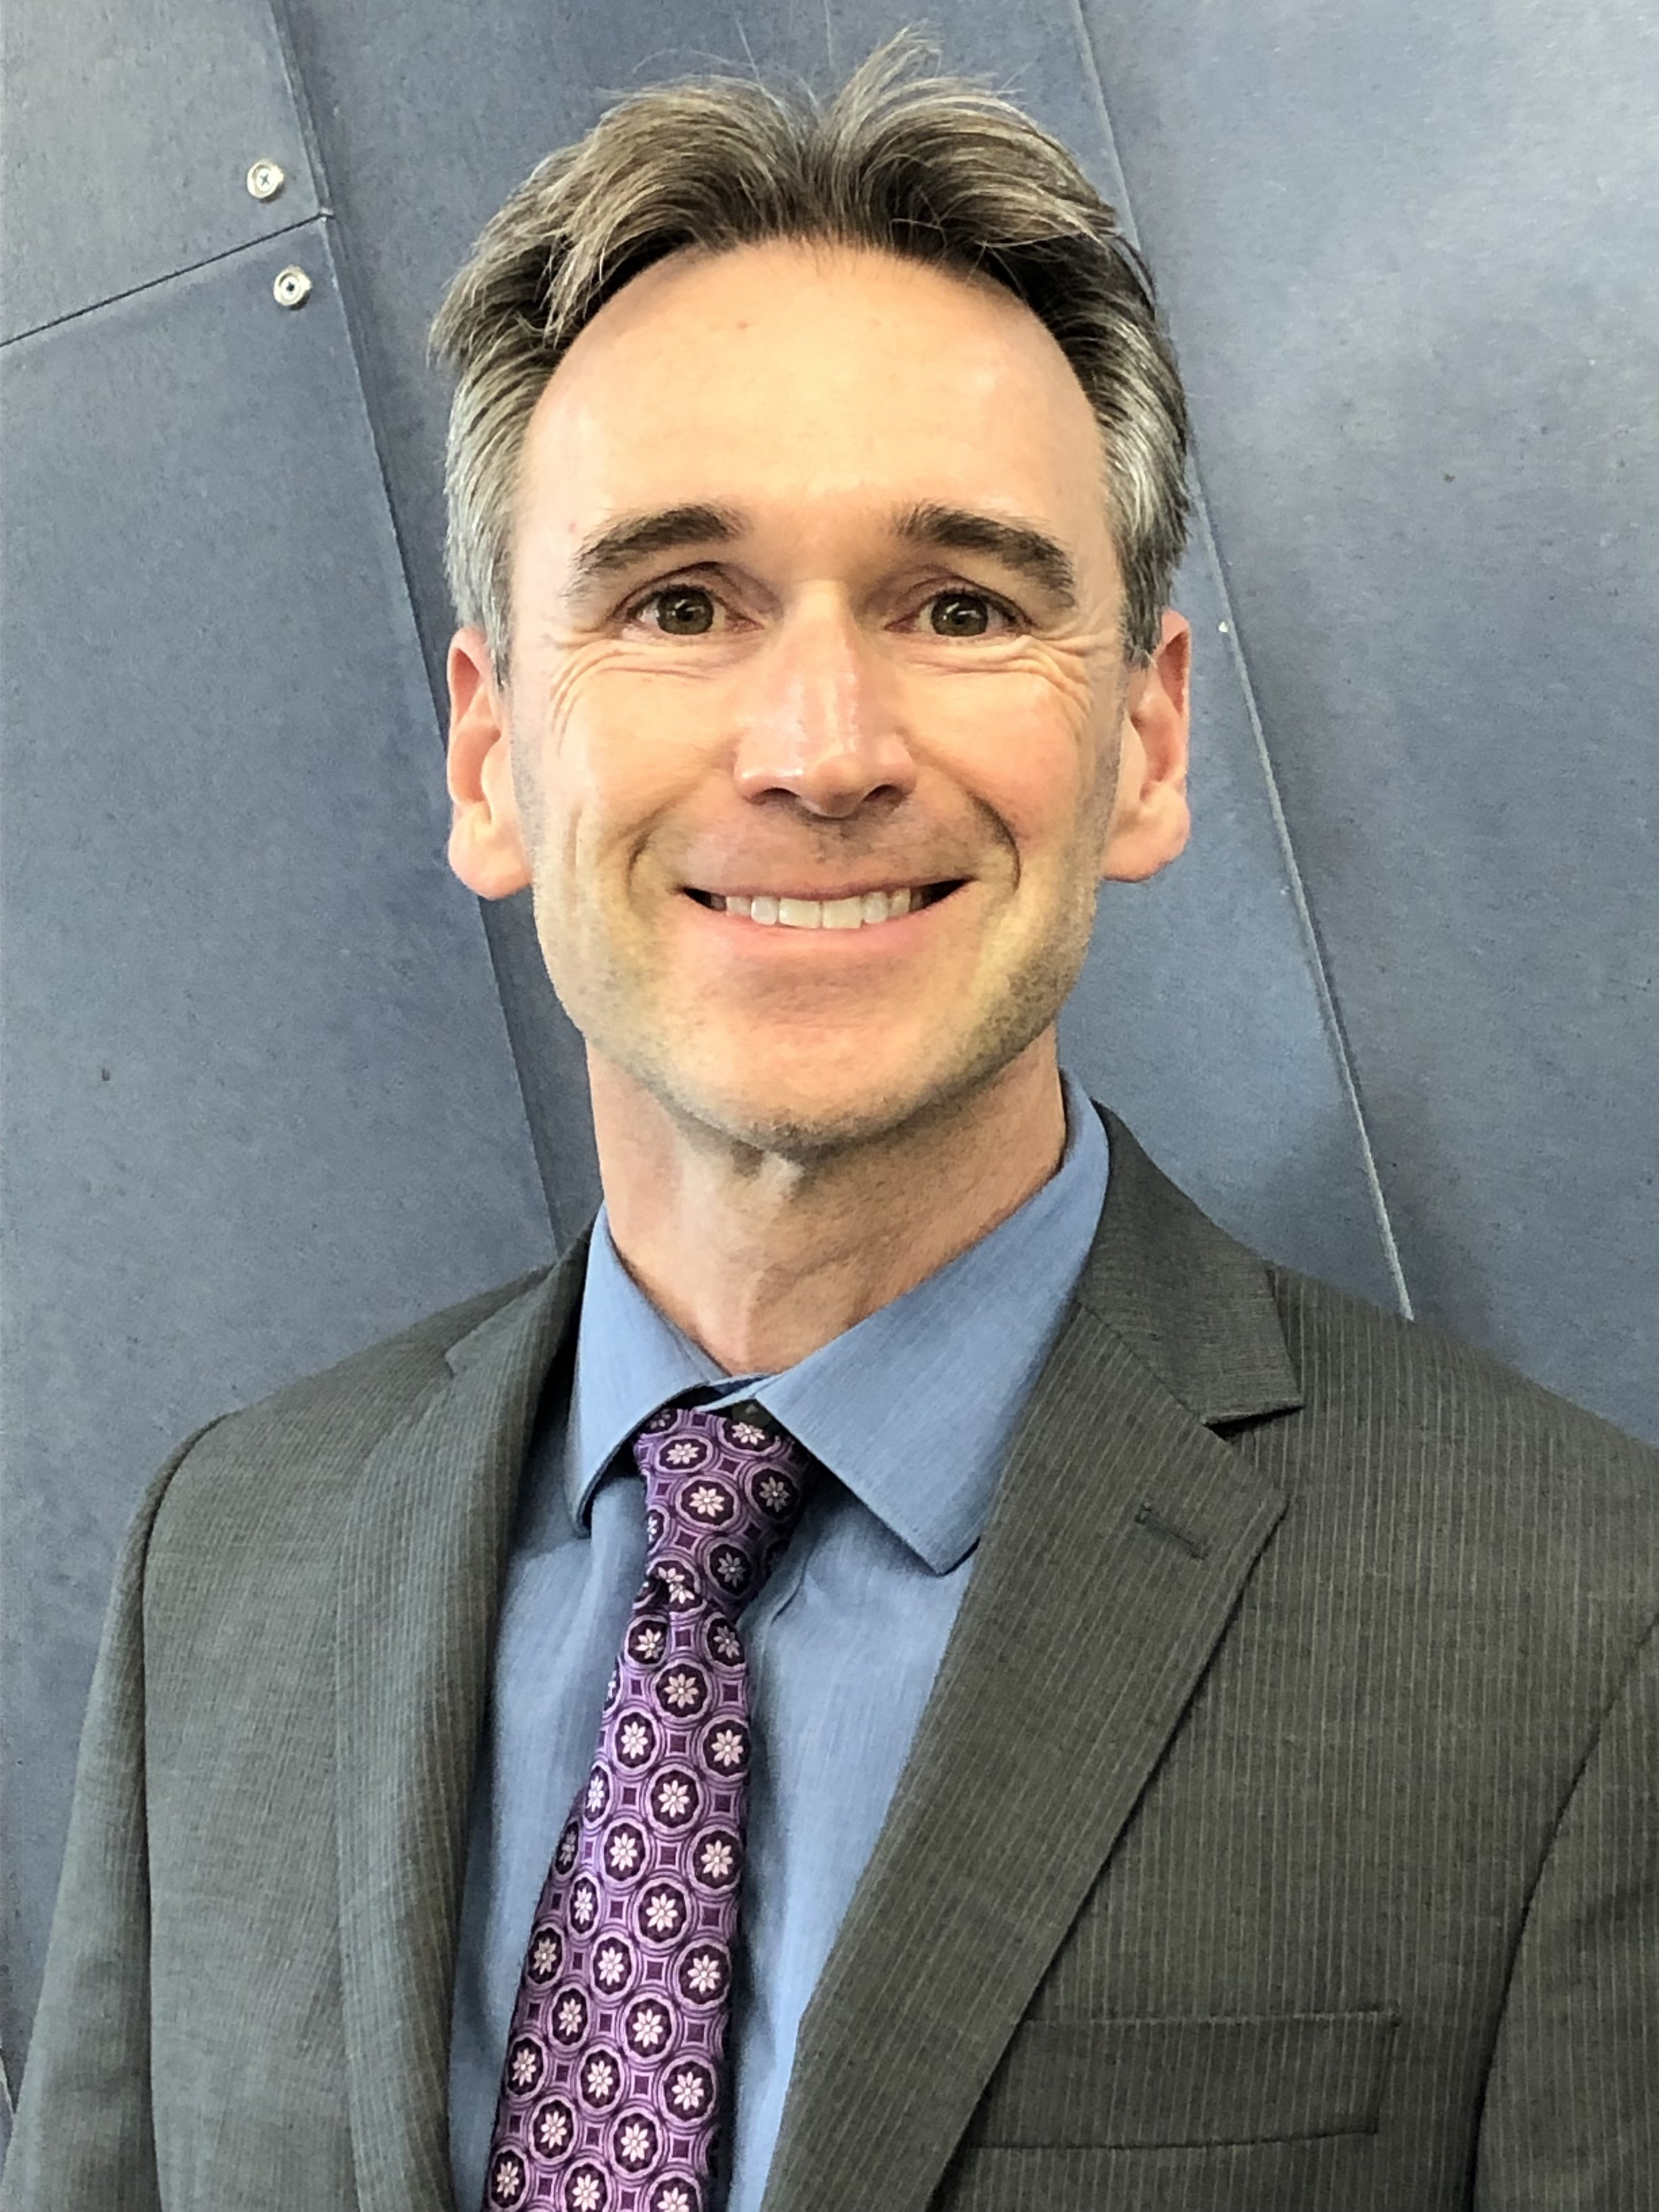 Dr. Greg Wilson helps organizations manage technical work, communicate to solve problems, collaboratively integrate expertise, and implement change. -